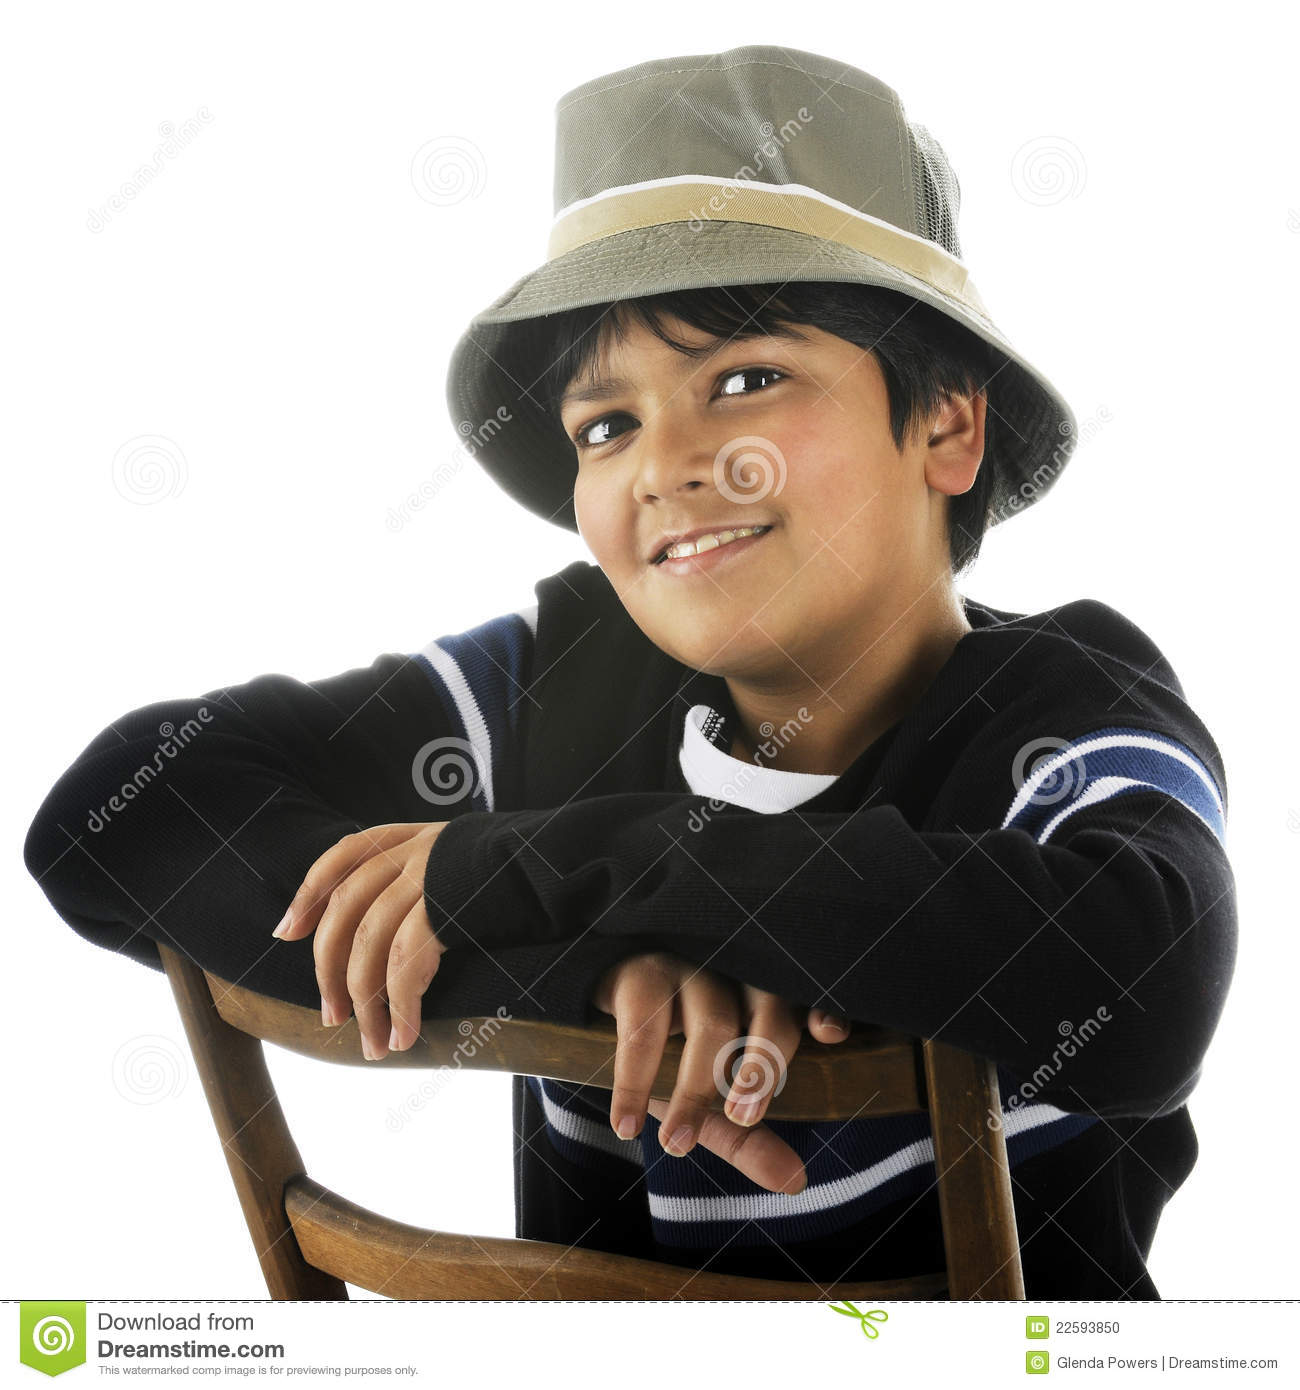 A happy biracial preteen sitting backwards on a ladder-back chair while  wearing a bucket hat. On a white background. 91f2c6f89e7